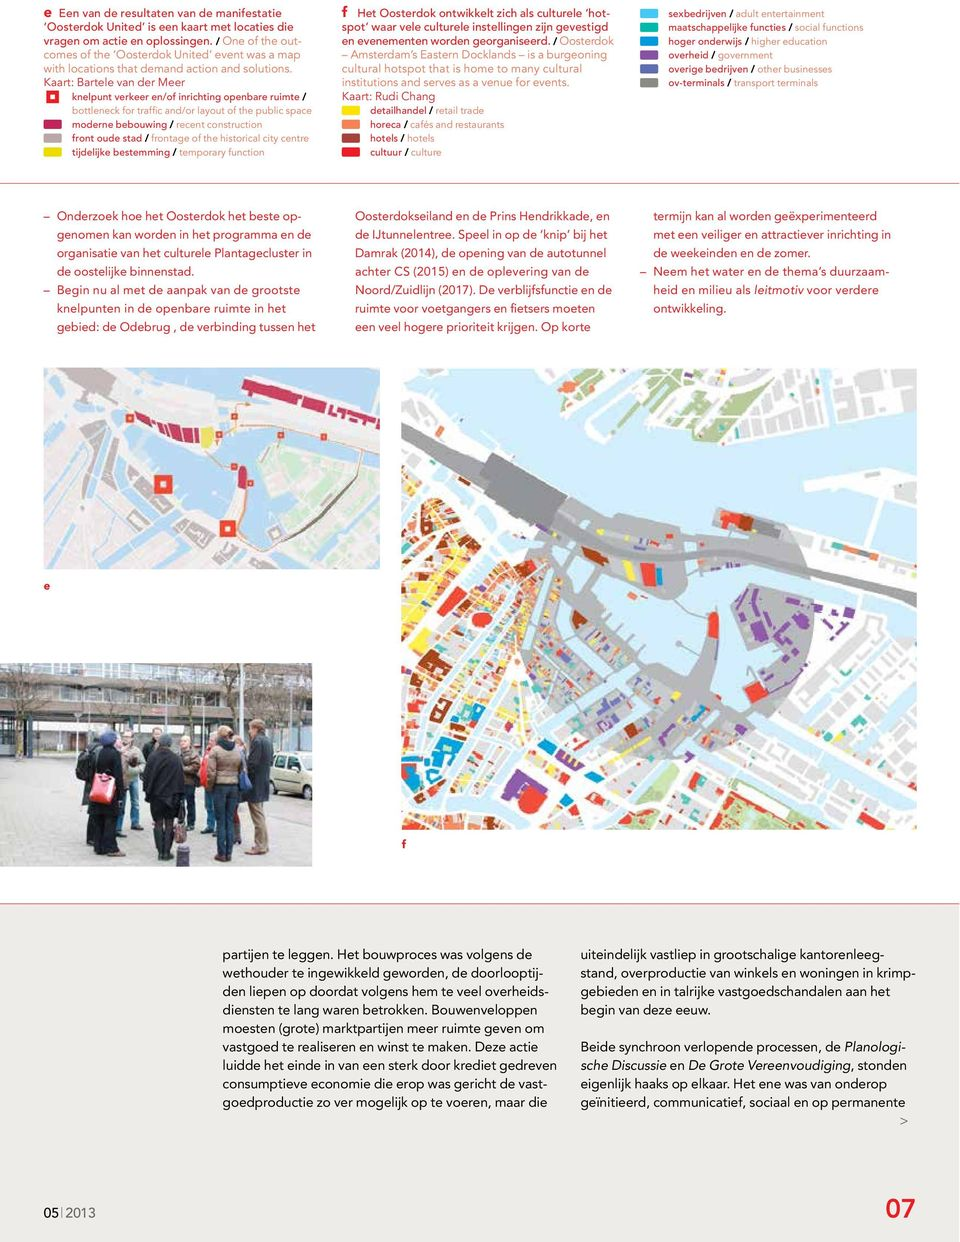 Kaart: Bartele van der Meer knelpunt verkeer en/of inrichting openbare ruimte / bottleneck for traffic and/or layout of the public space moderne bebouwing / recent construction front oude stad /